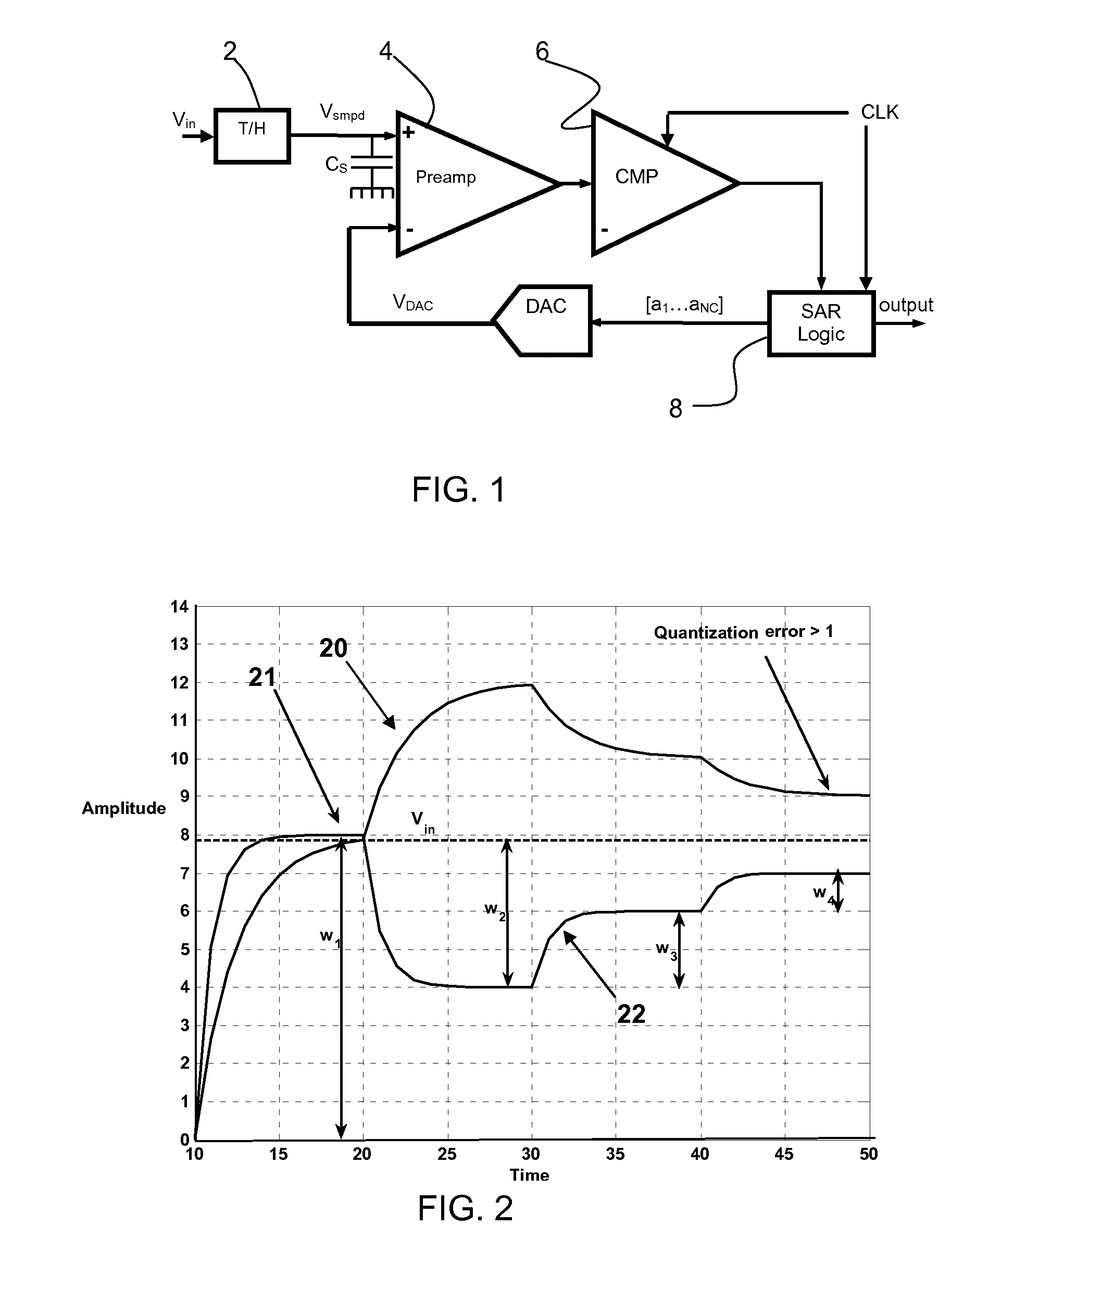 Successive Approximate Adc Circuit Diagram Electric Drawing At Free For Personal Use 1100x1289 Patent Us20130033392 Approximation Register